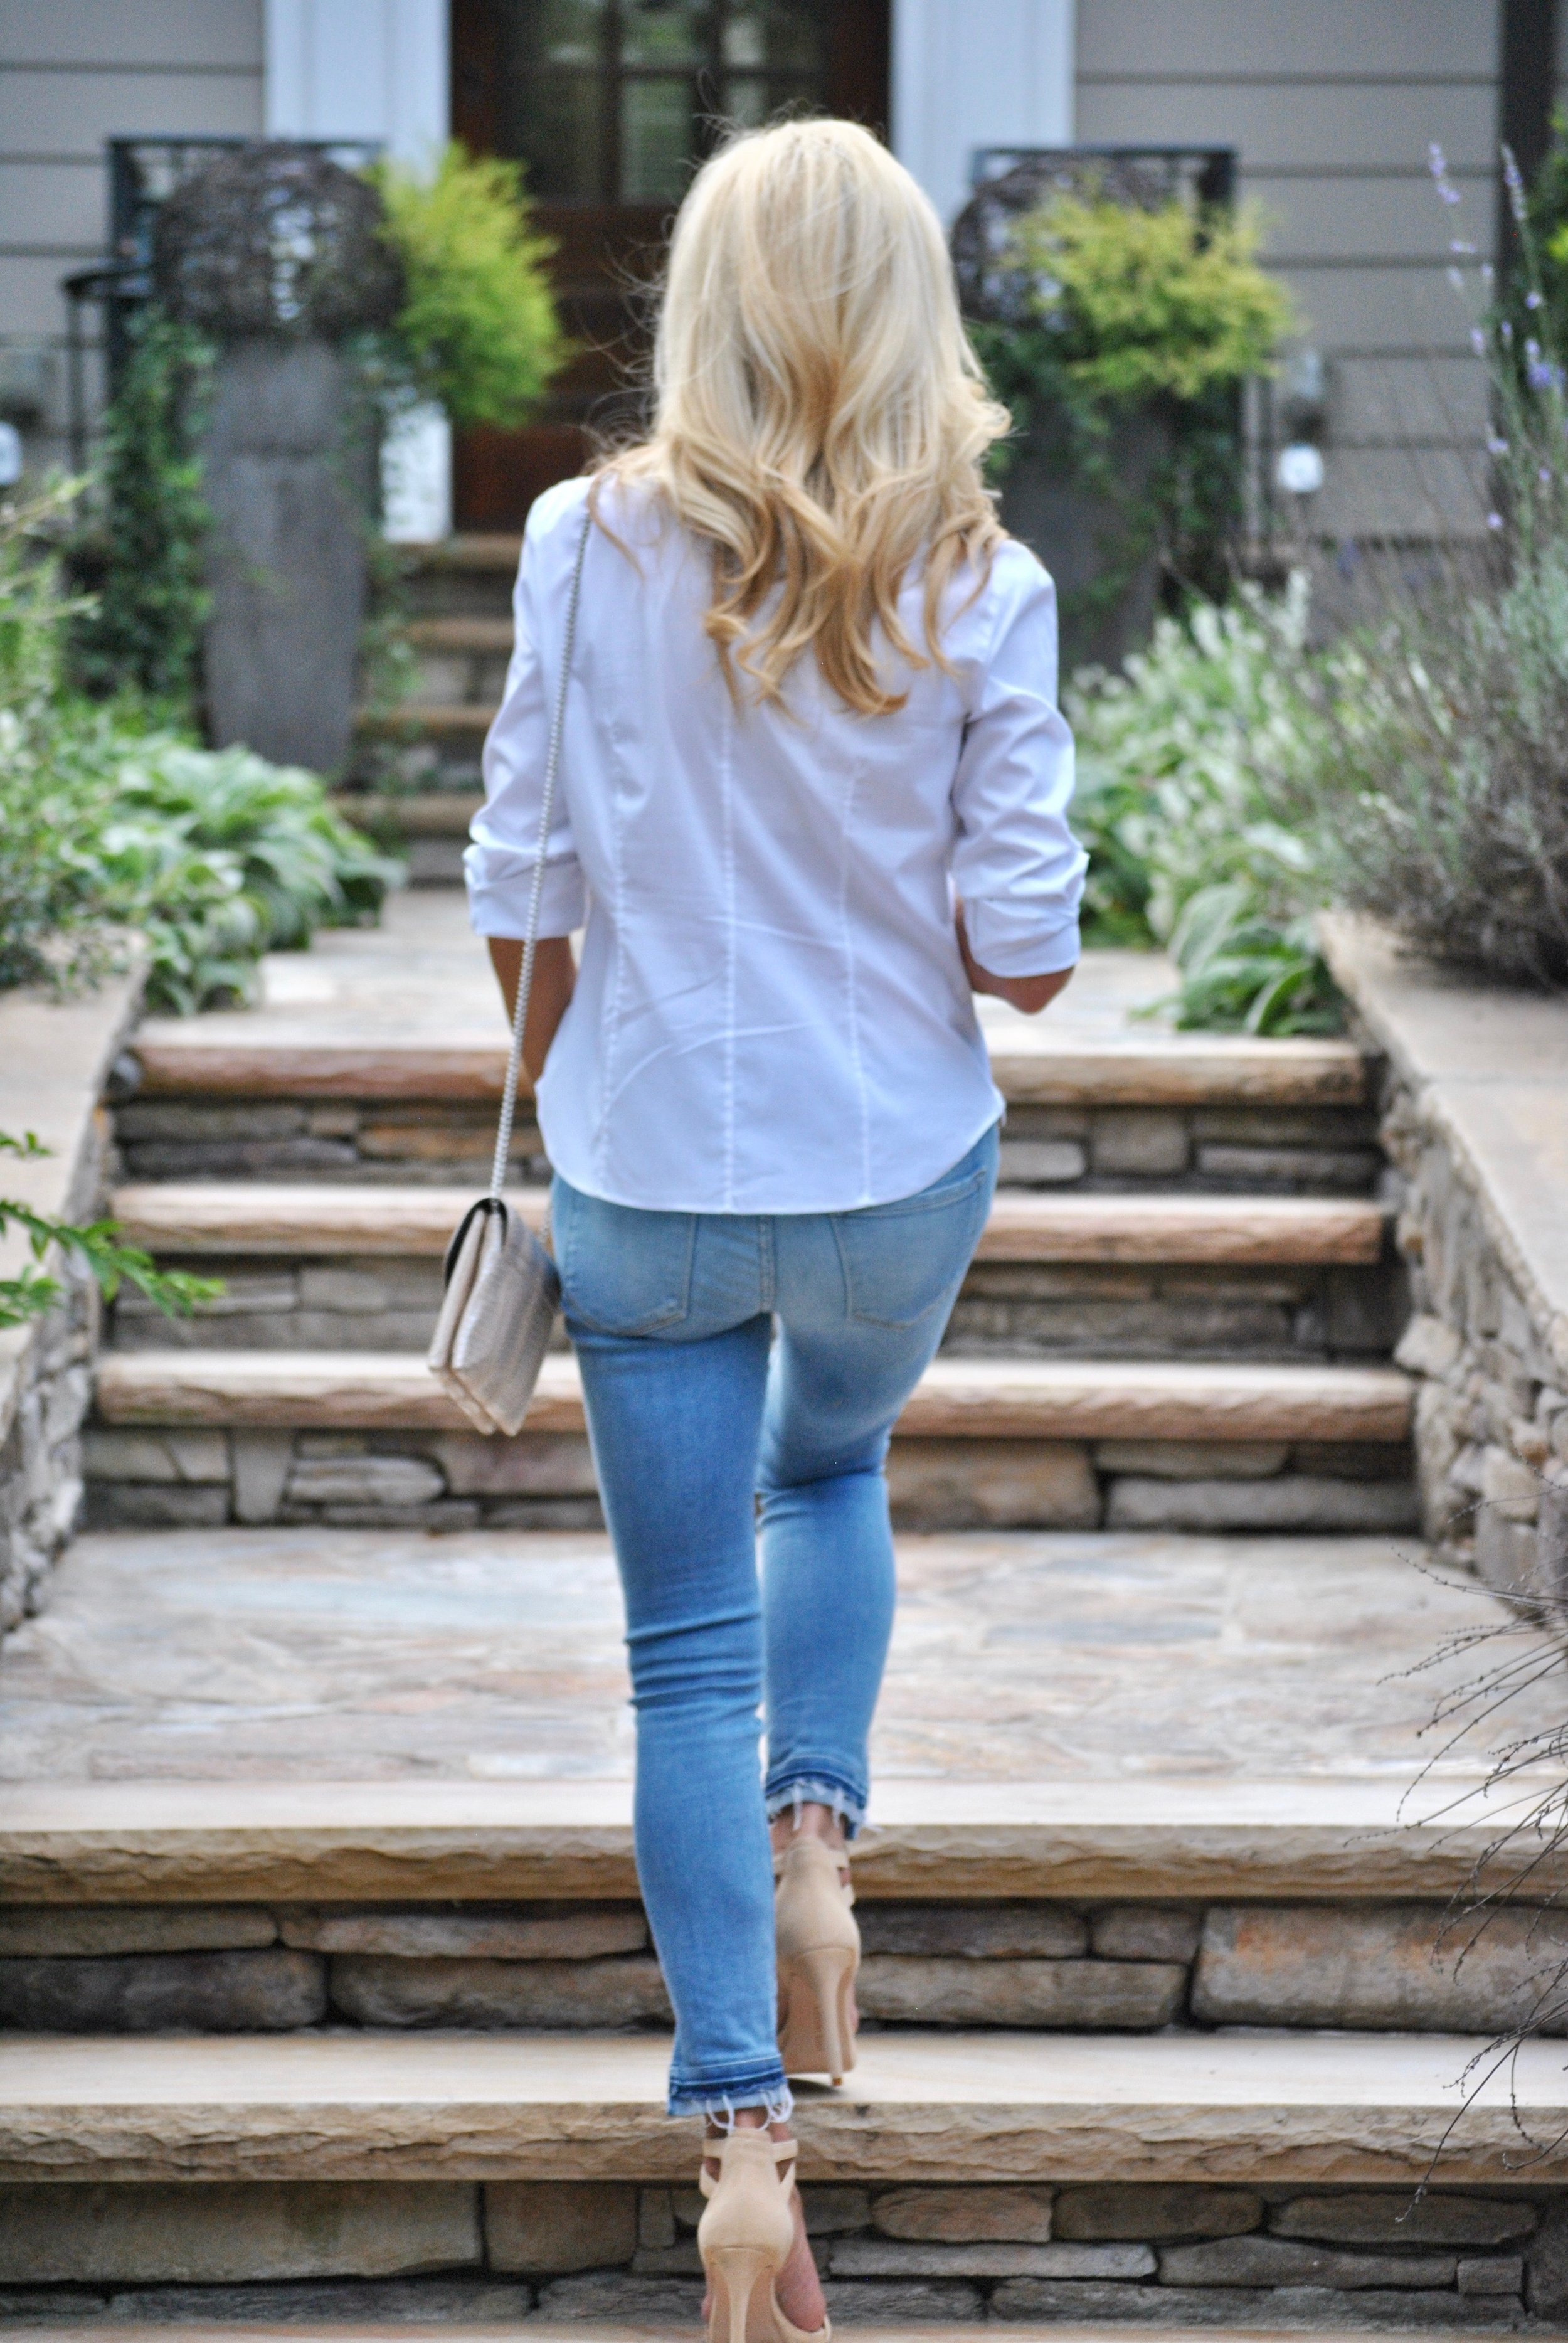 Basic White Blouse and Jeans